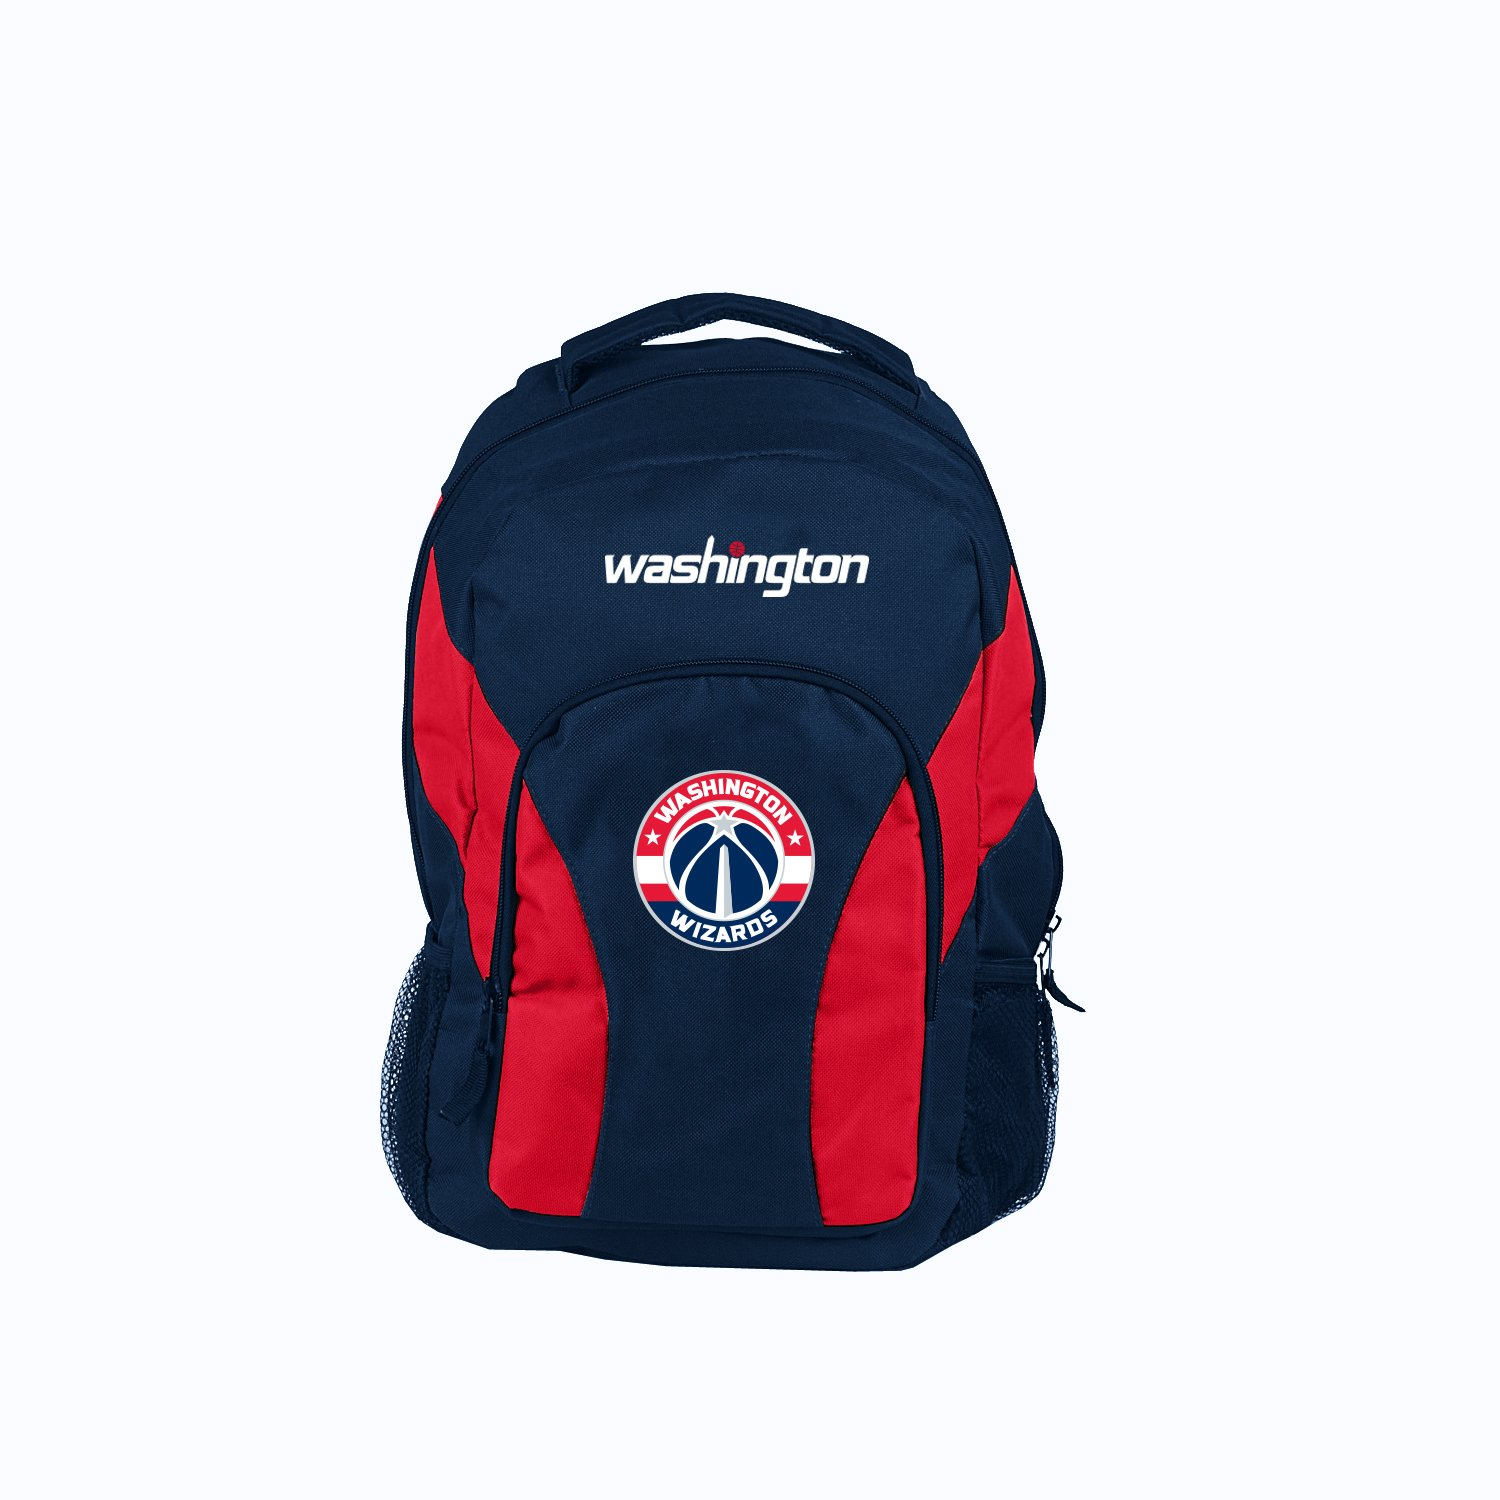 The Northwest Company Officially Licensed NBA Washington Wizards Draftday Backpack